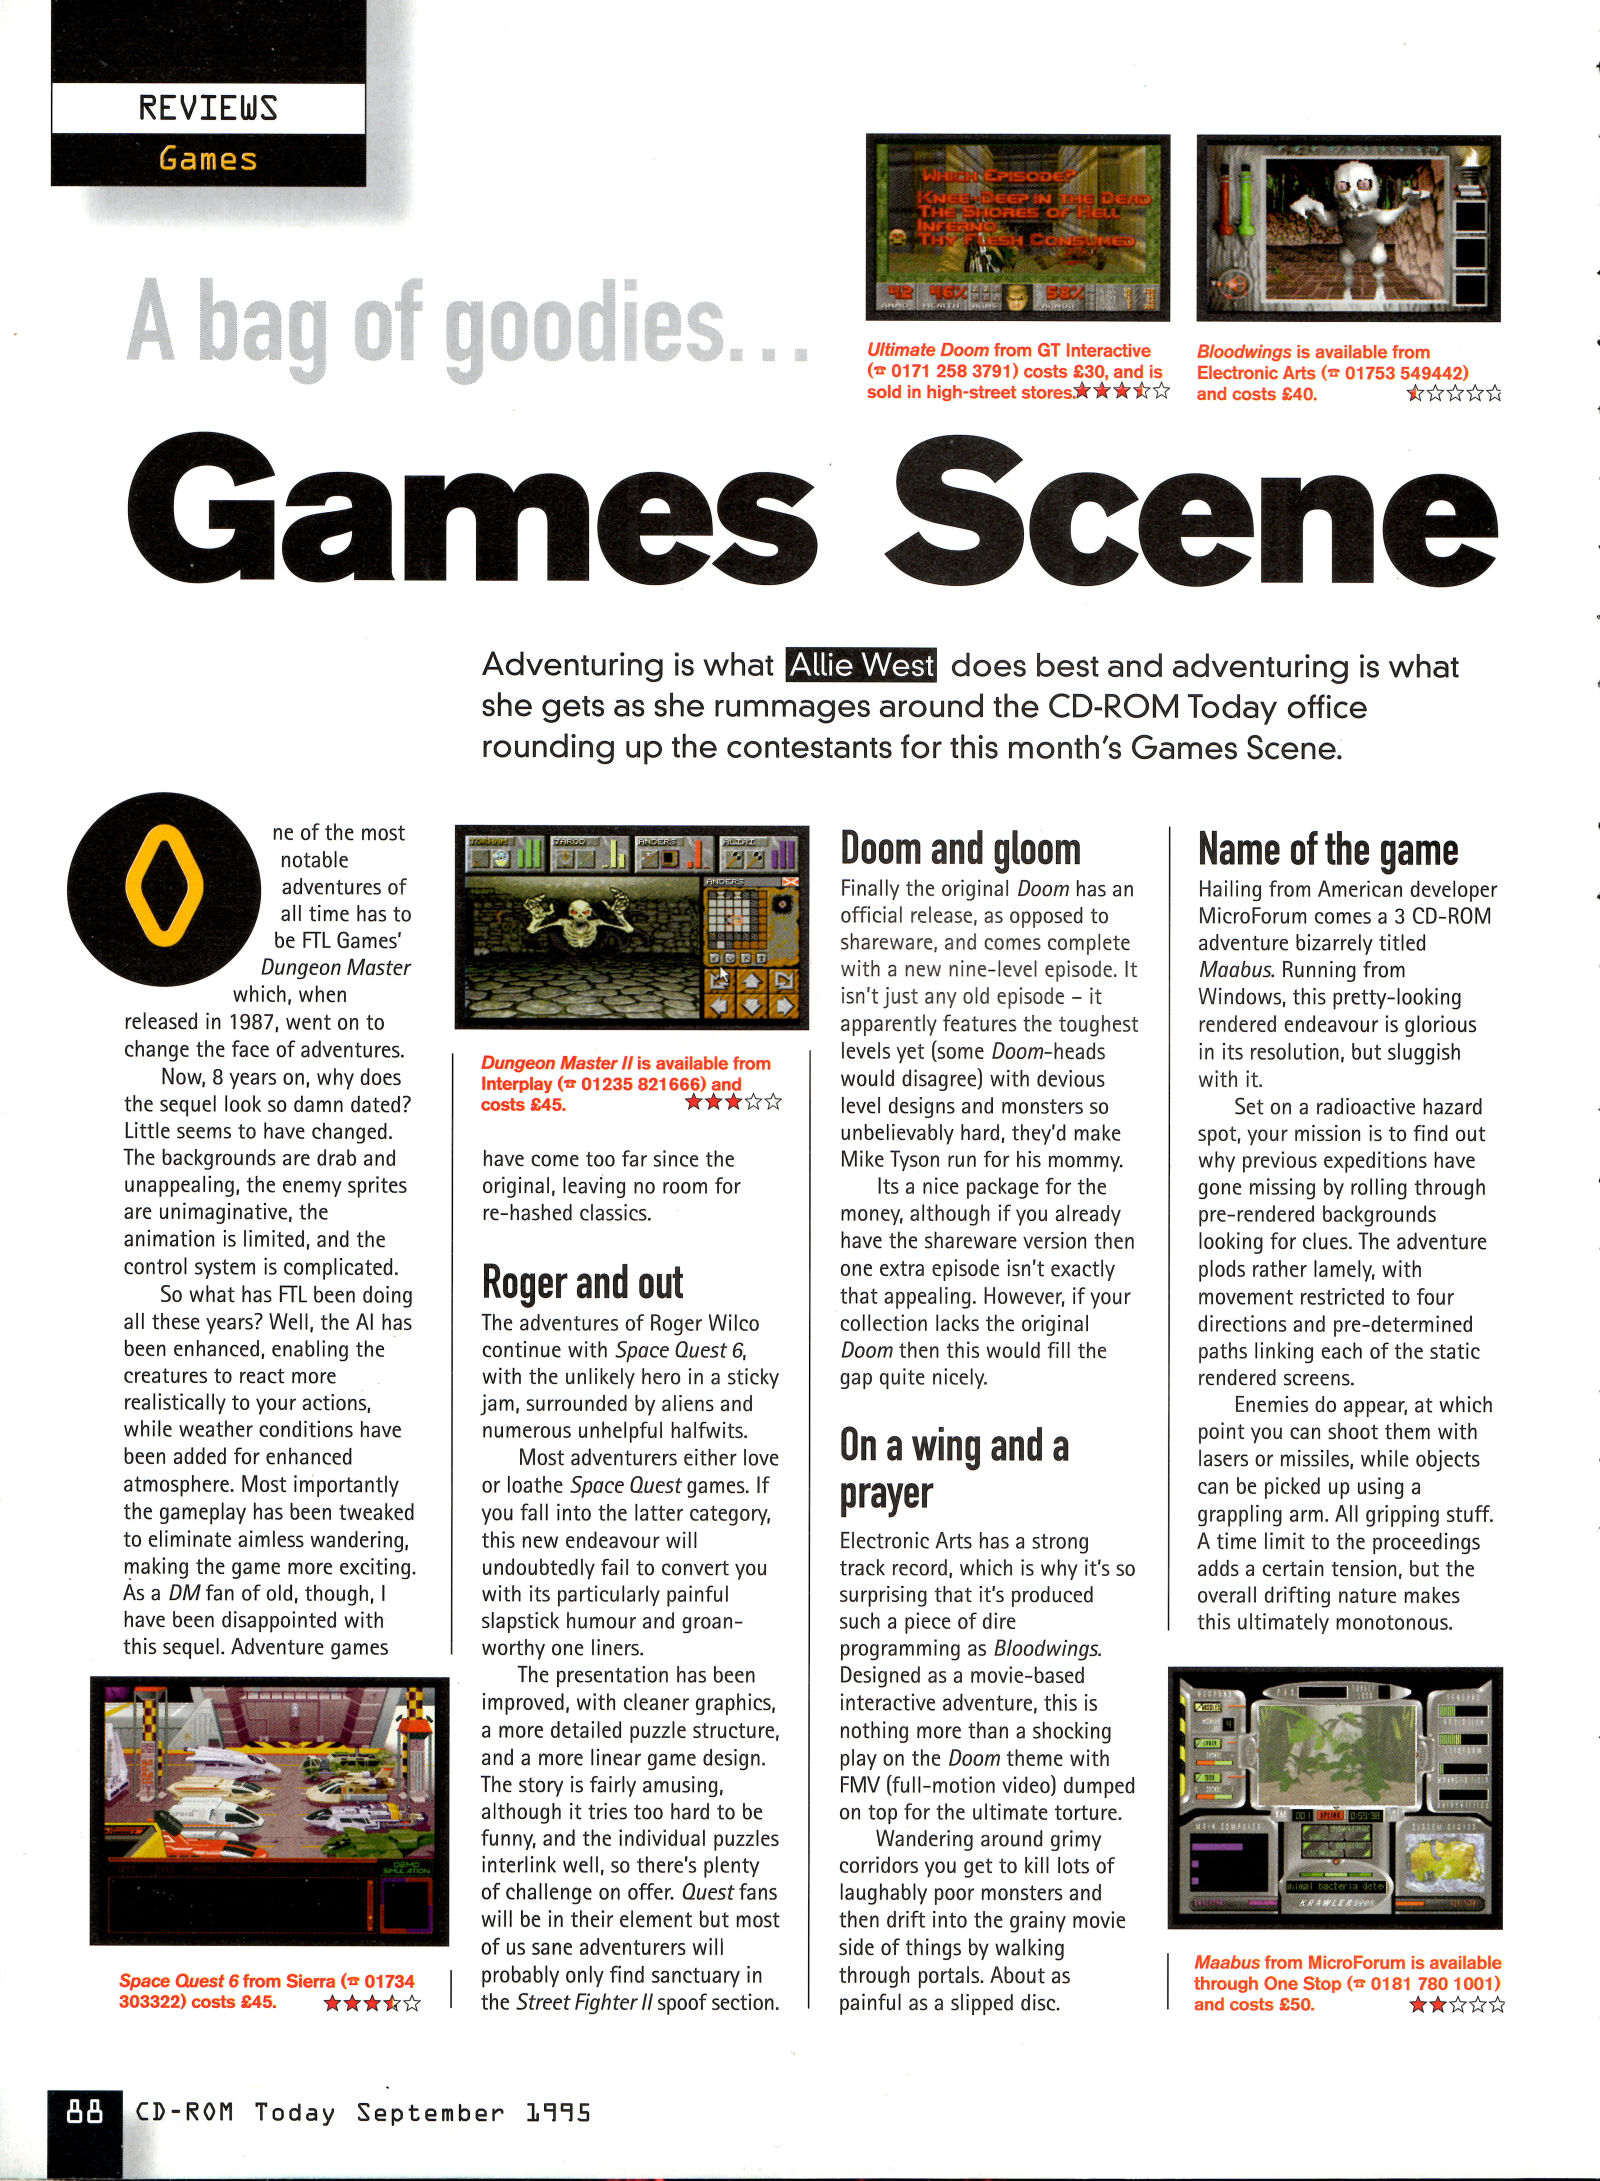 Dungeon Master II for PC Review published in British magazine 'CD-ROM Today', Issue #17 September 1992, Page 88